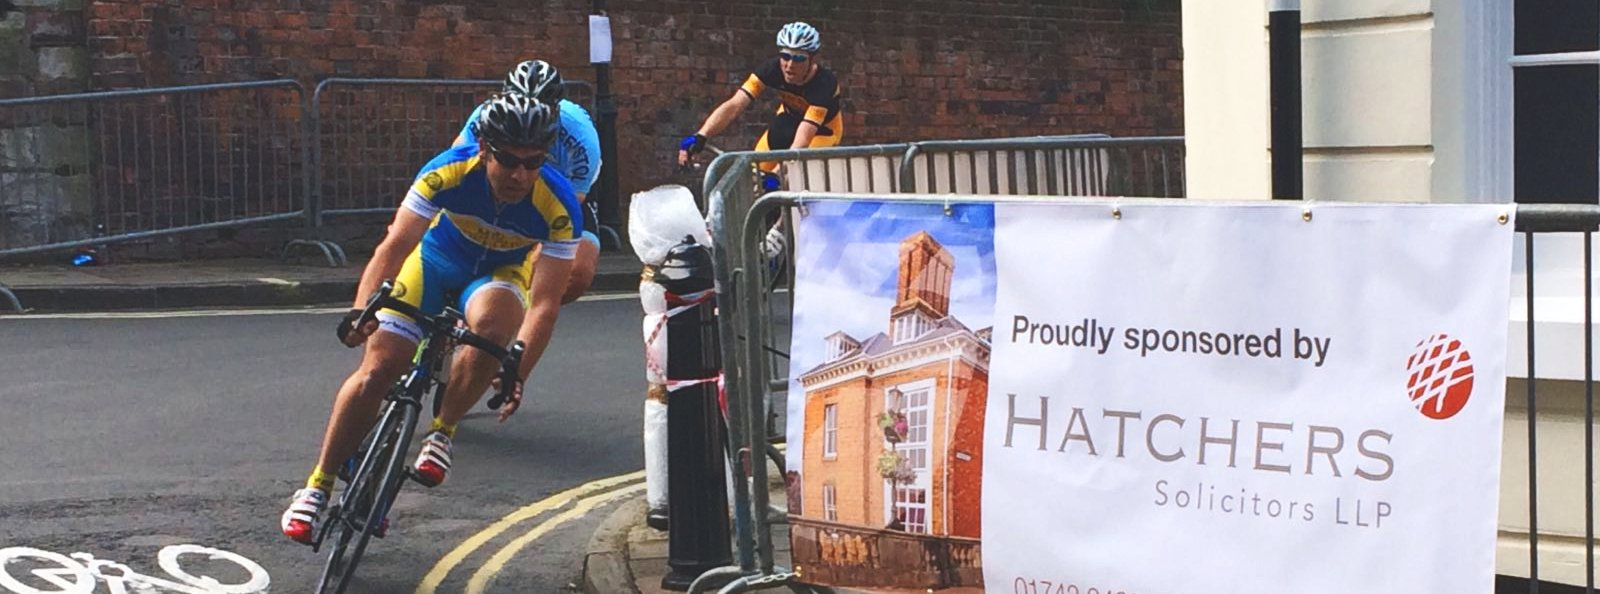 Shrewsbury Cycle Grand Prix